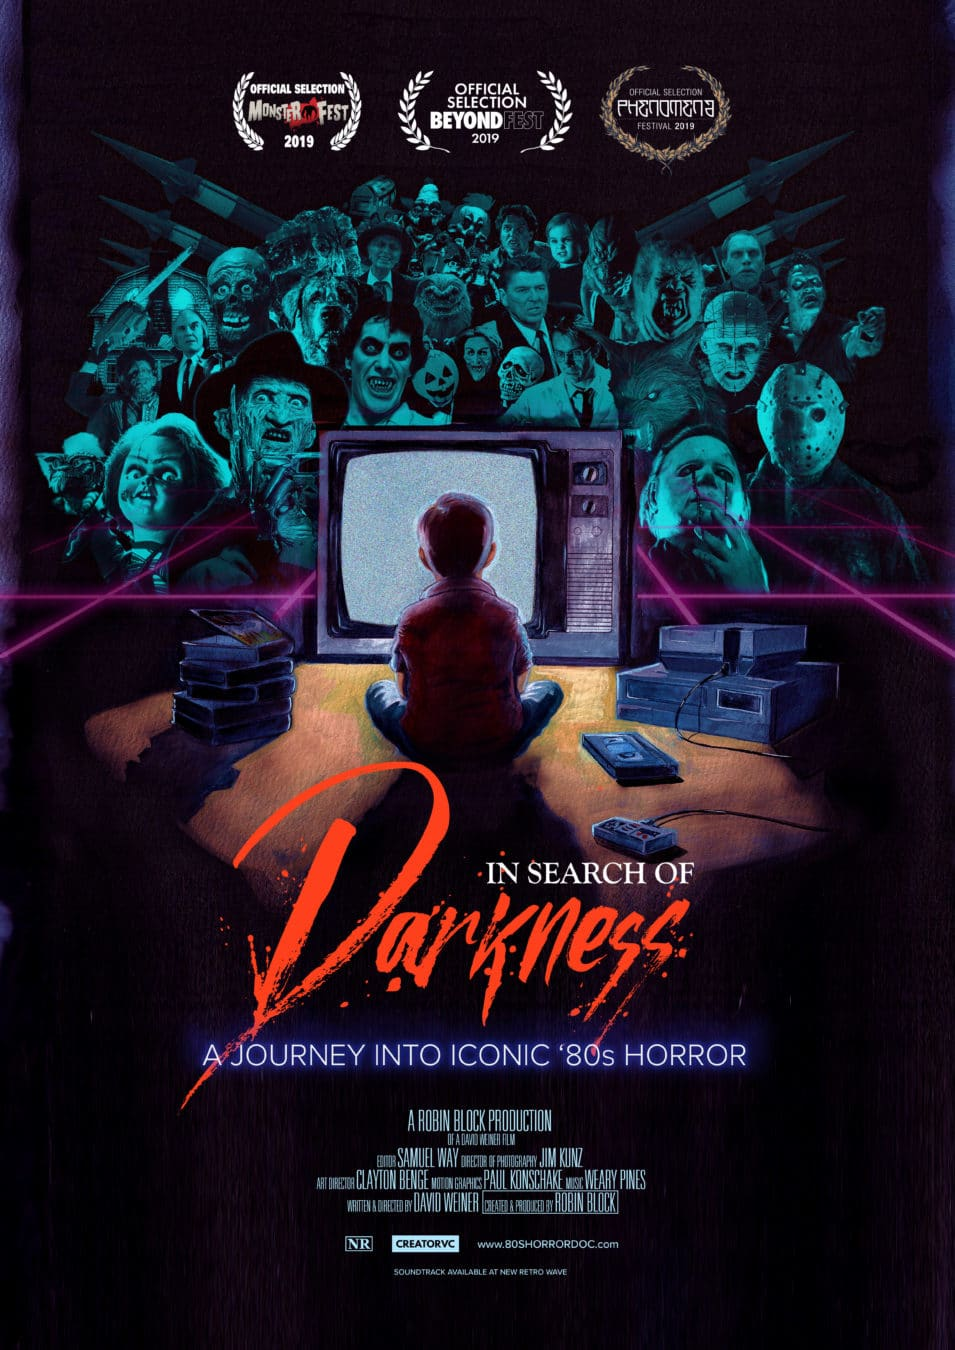 [Exclusive Interview] For the Fans, By The Fans: Director David Weiner Discusses 80's Horror Documentary IN SEARCH OF DARKNESS